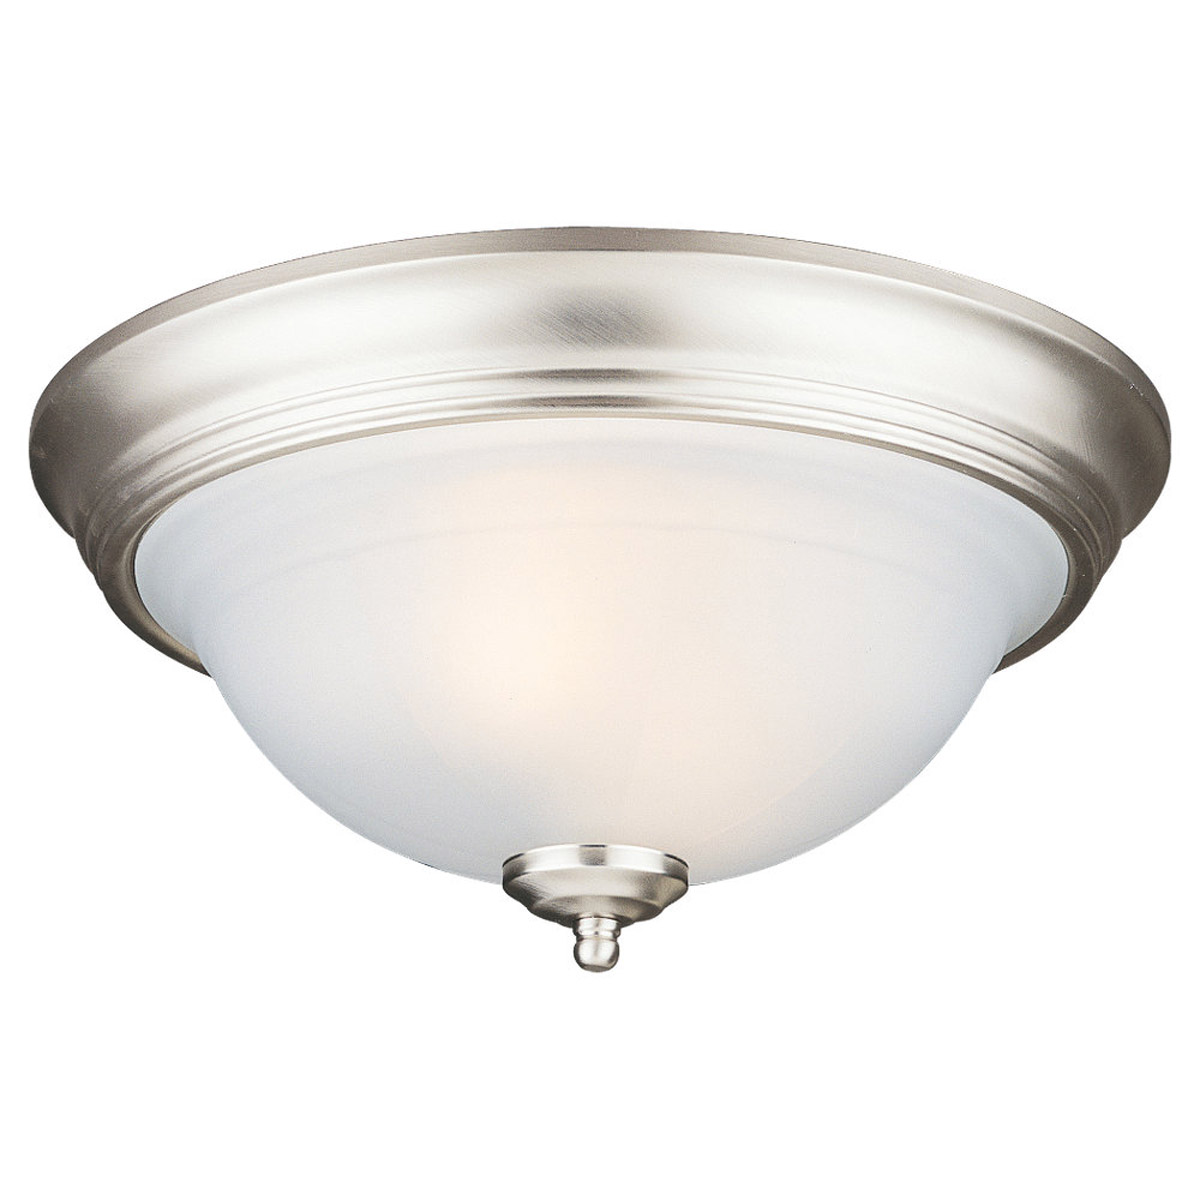 Sea Gull Lighting Canterbury 2 Light Flush Mount in Brushed Nickel 77050-962